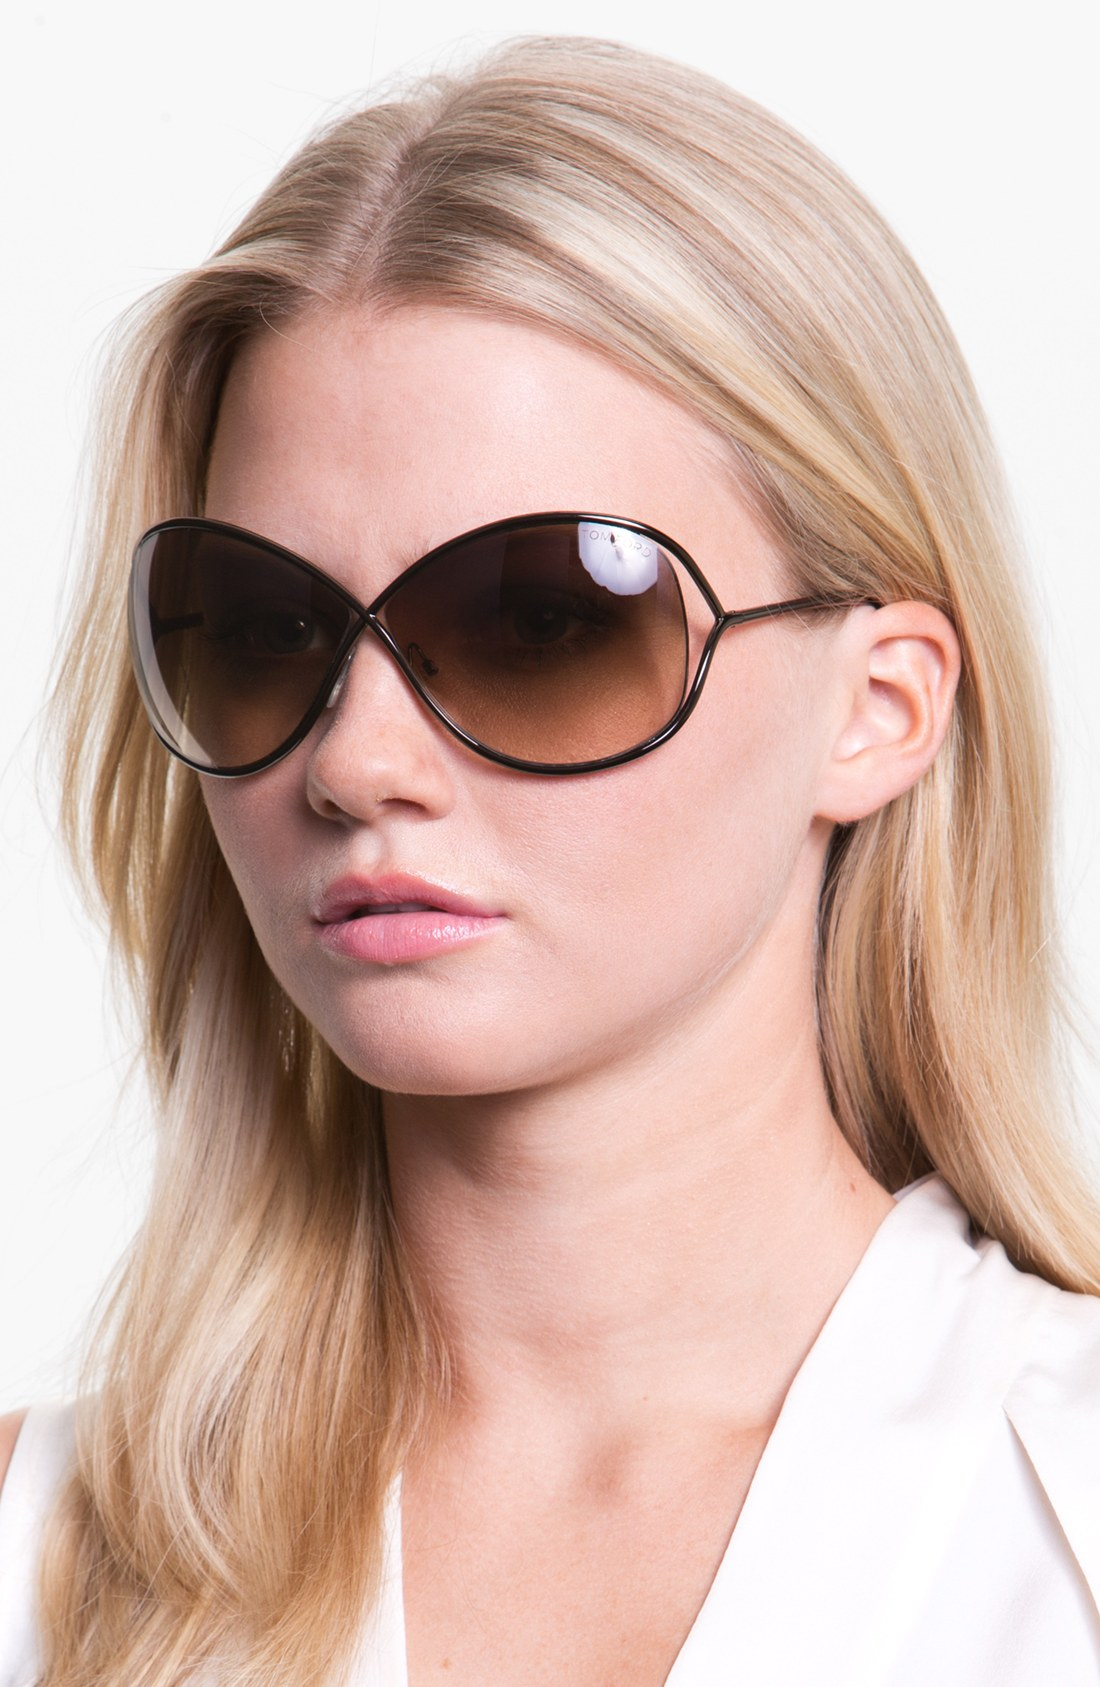 tom ford miranda 68mm open temple metal sunglasses in gold bronze. Cars Review. Best American Auto & Cars Review